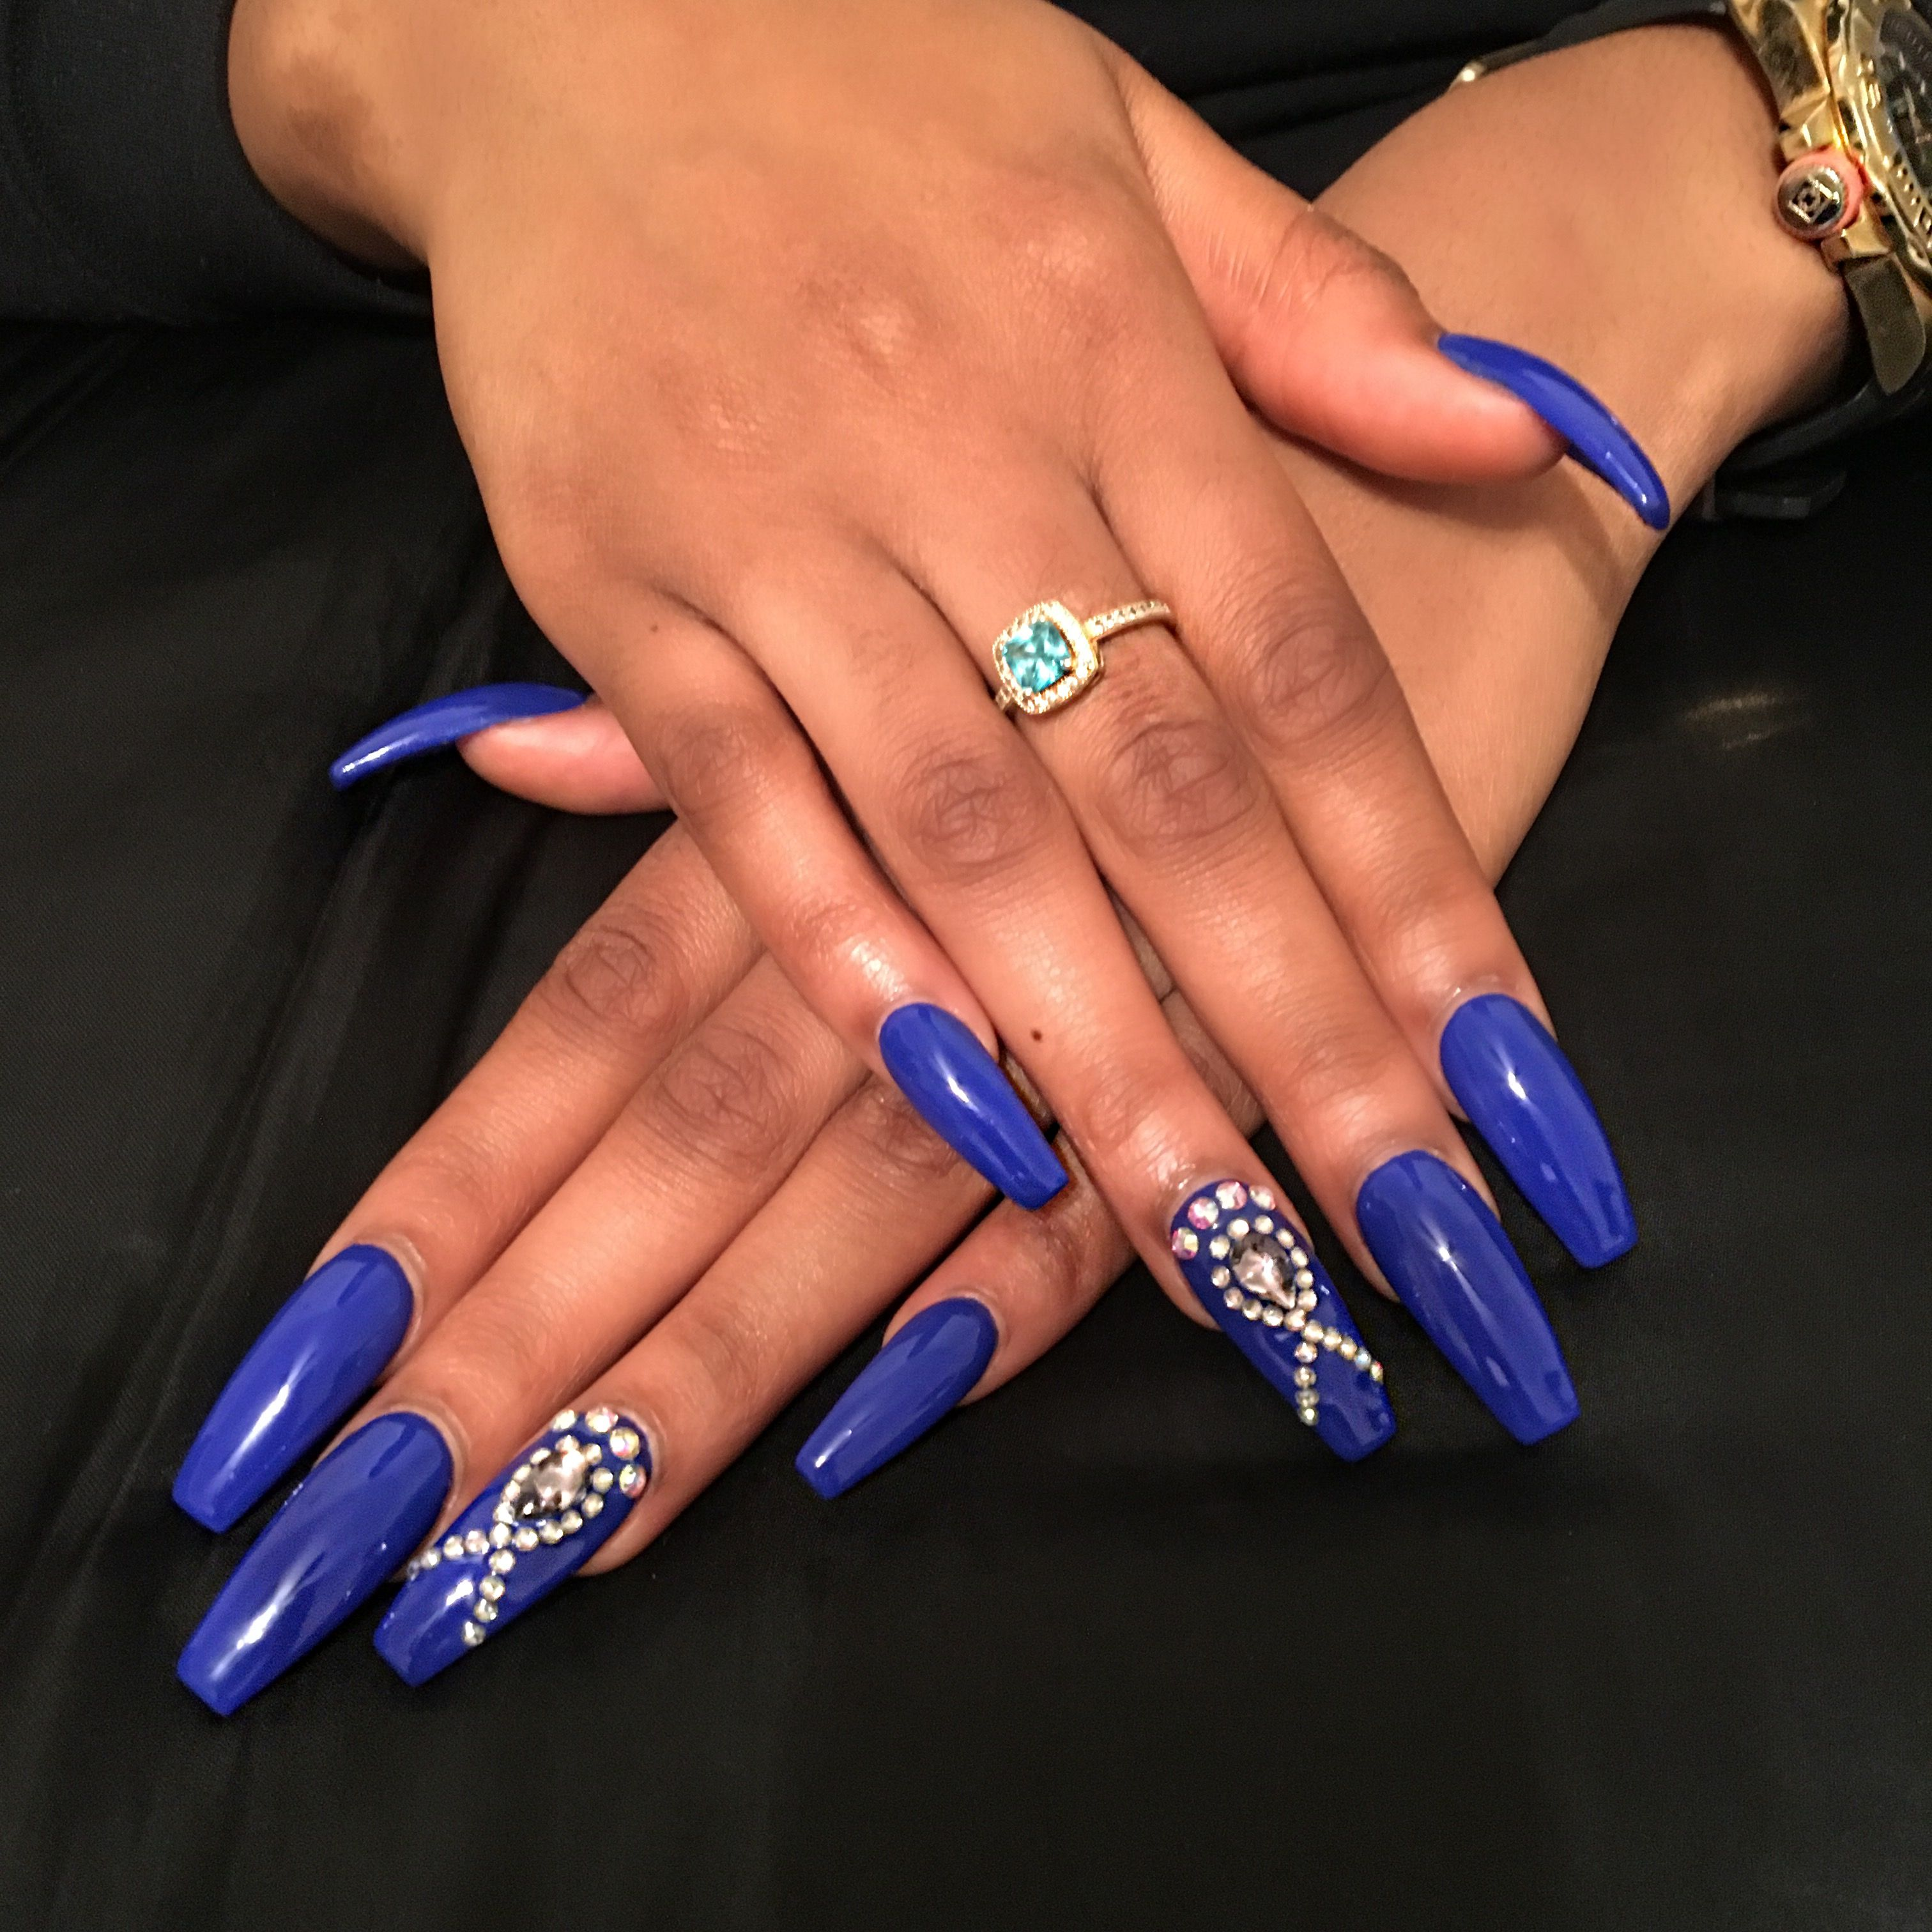 Royal Blue Coffin Nails With Rhinestones Rhinestone Nails Royal Blue Nails Nails Design With Rhinestones